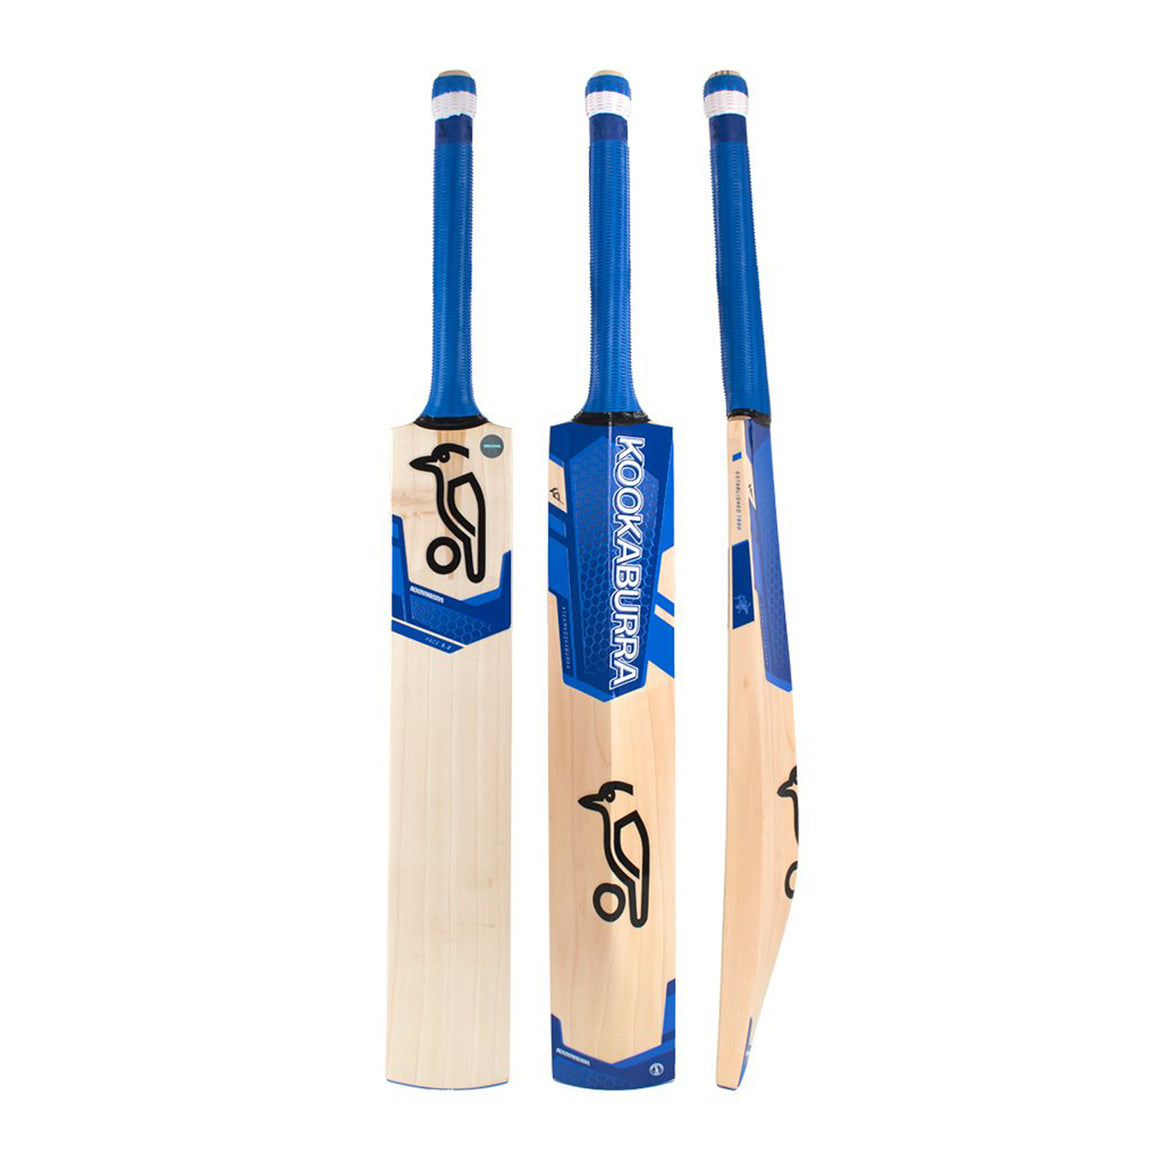 Pace KW Cricket Bat for Kids in Sand